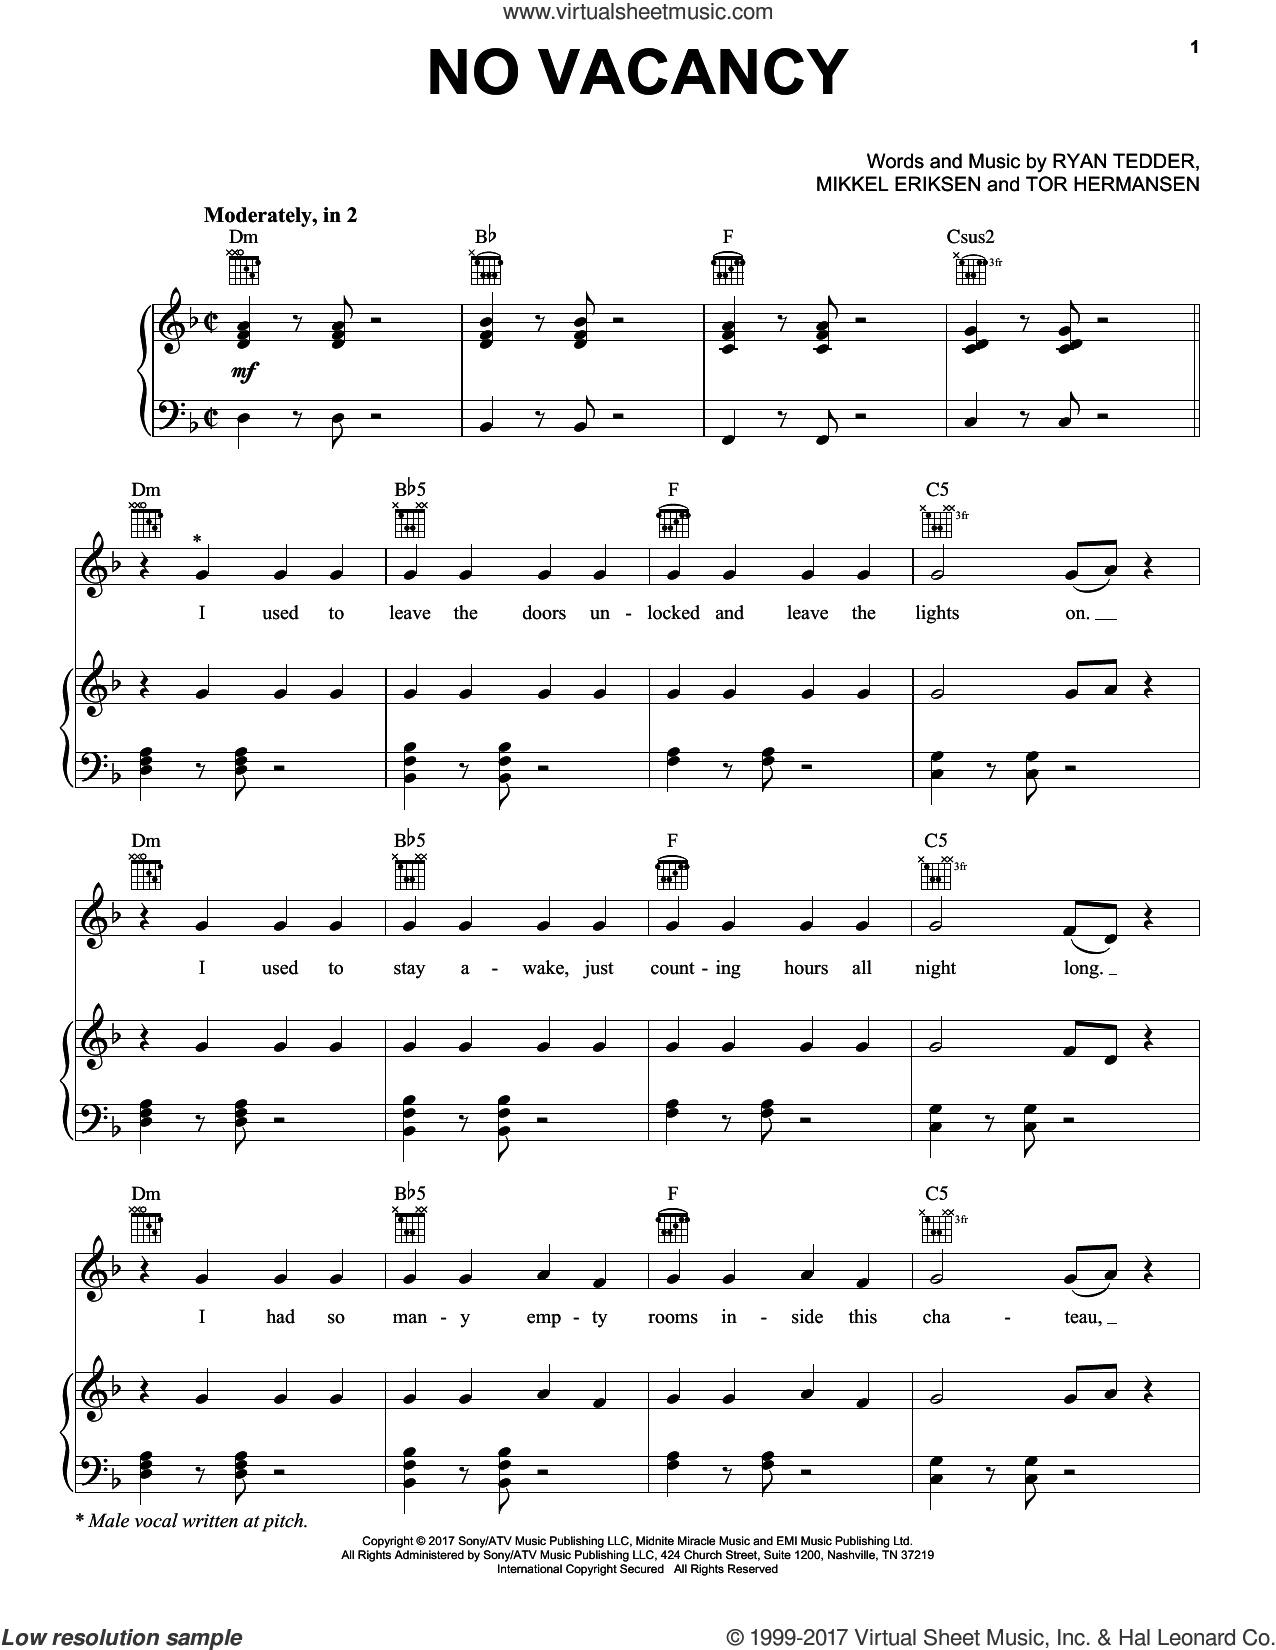 No Vacancy sheet music for voice, piano or guitar by Tor Erik Hermansen, One Republic, Mikkel Eriksen and Ryan Tedder. Score Image Preview.